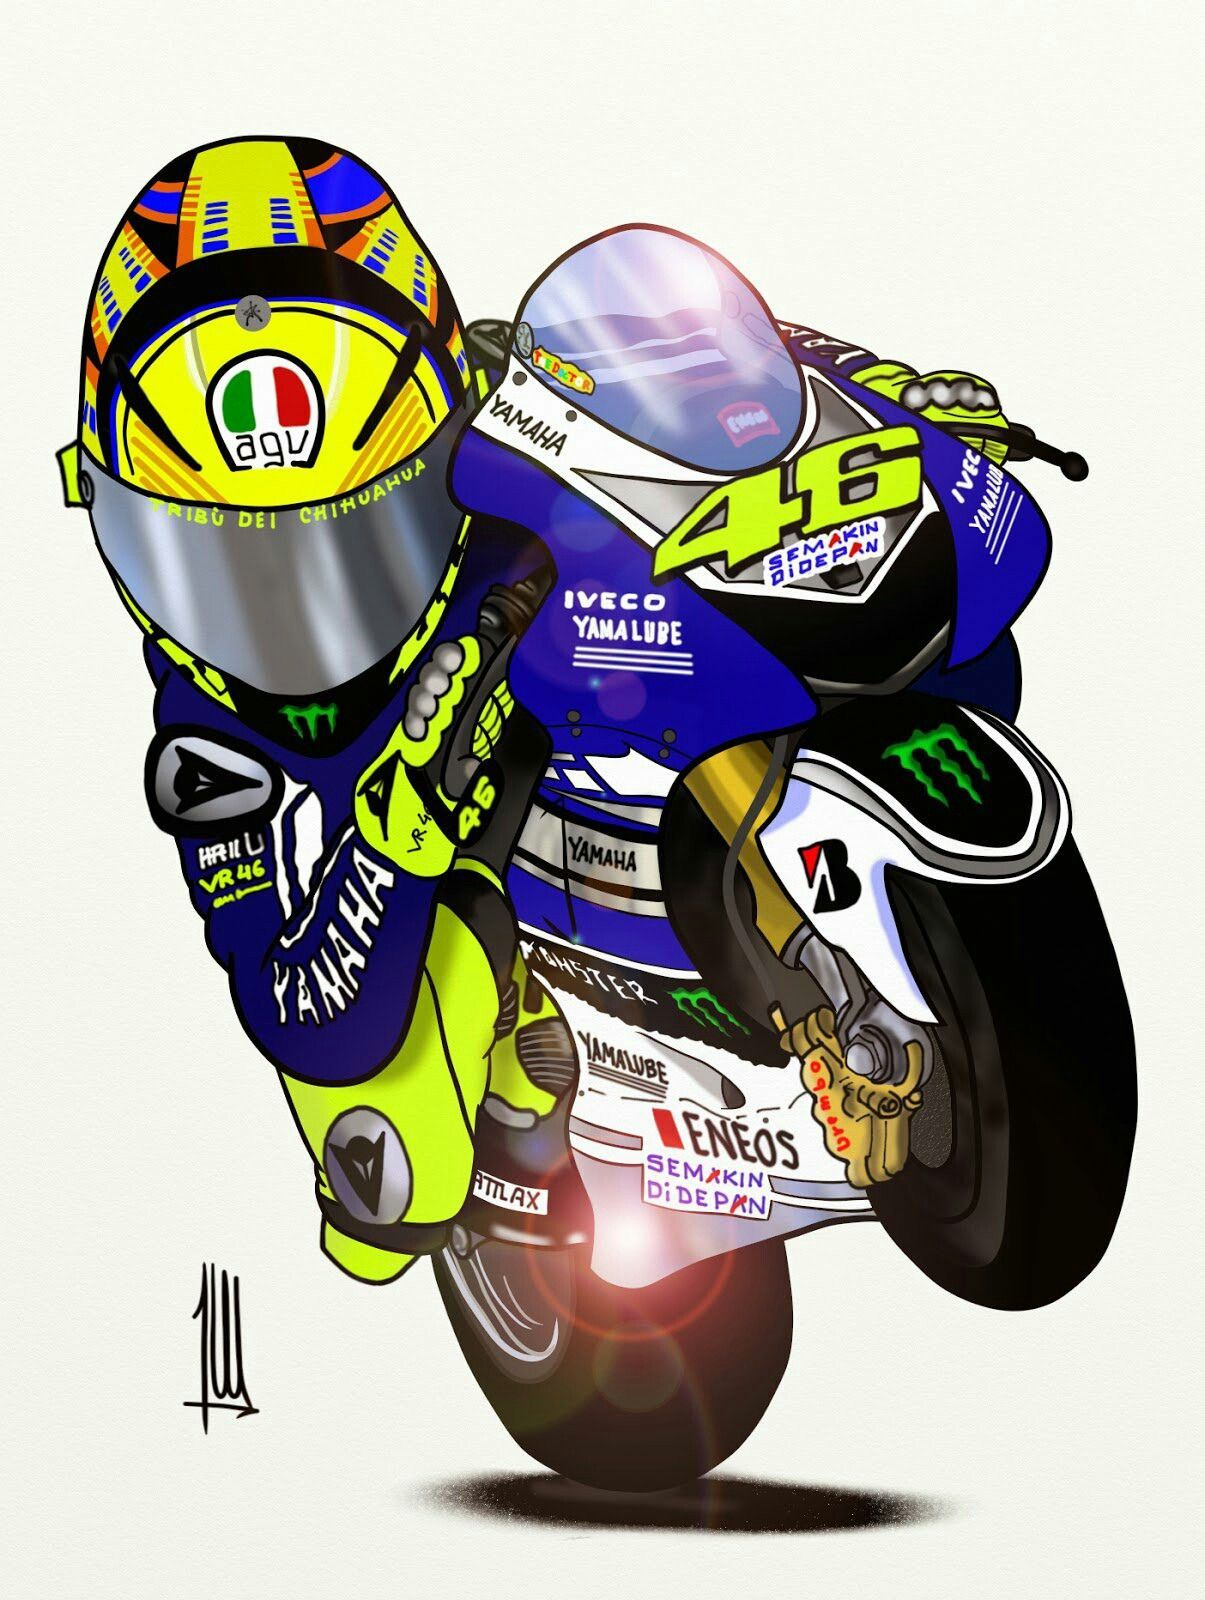 Vr 46 Wallpaper Cartoon Vr 46 Wallpaper In 2020 Vr46 Valentino Rossi Valentino Rossi Foto Valentino Rossi